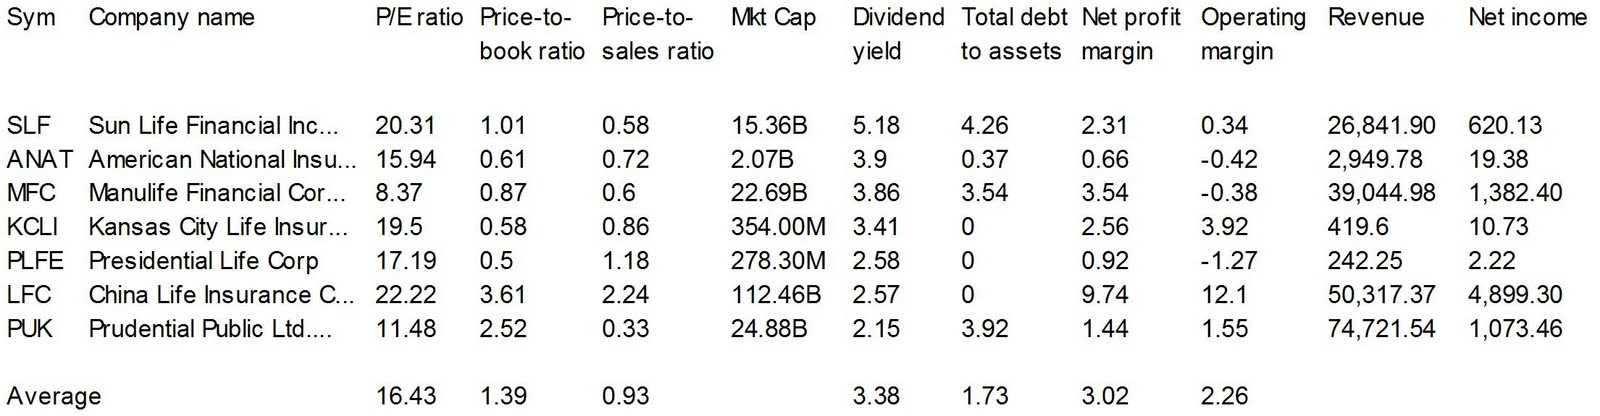 Dividend Yield Stock Capital Investment 7 High Yielding Life